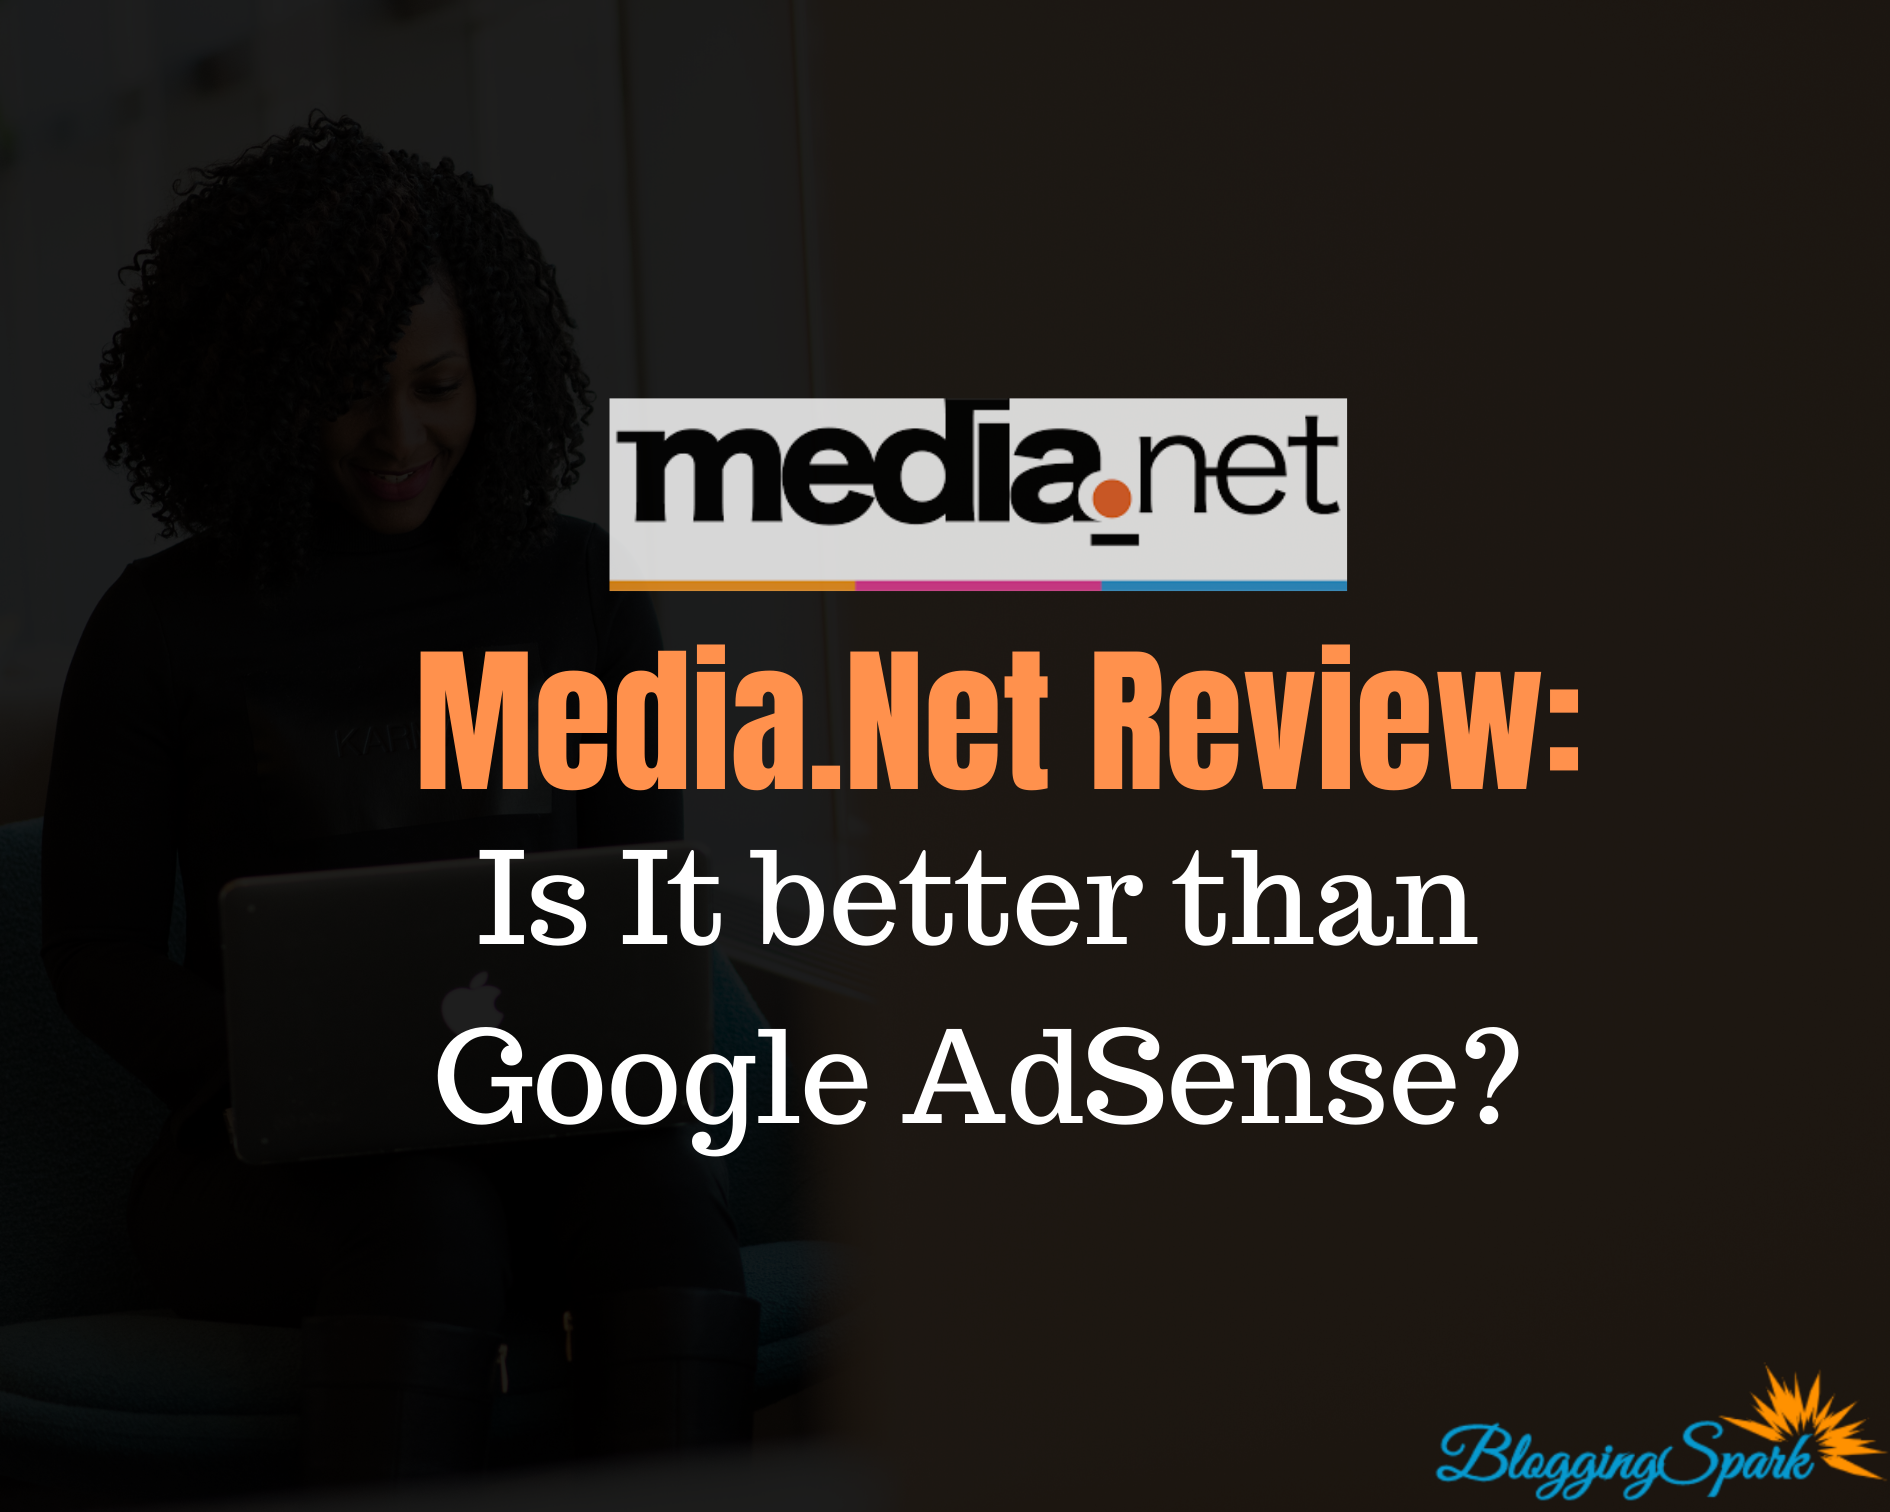 Media.Net Review: Is It better than Google AdSense?